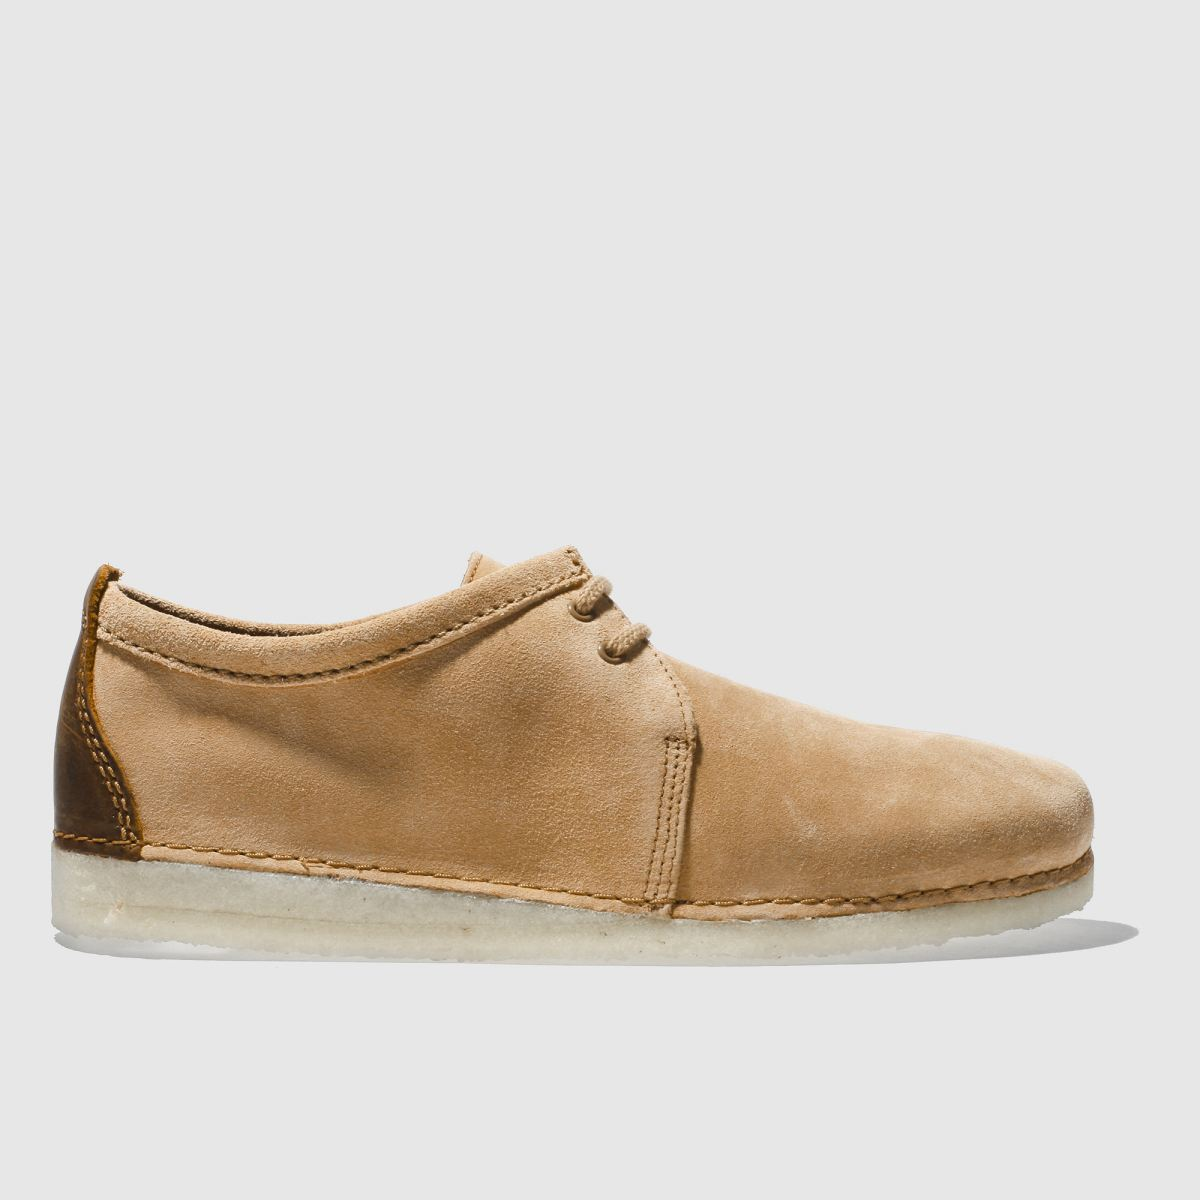 Clarks Originals Tan Ashton Shoes